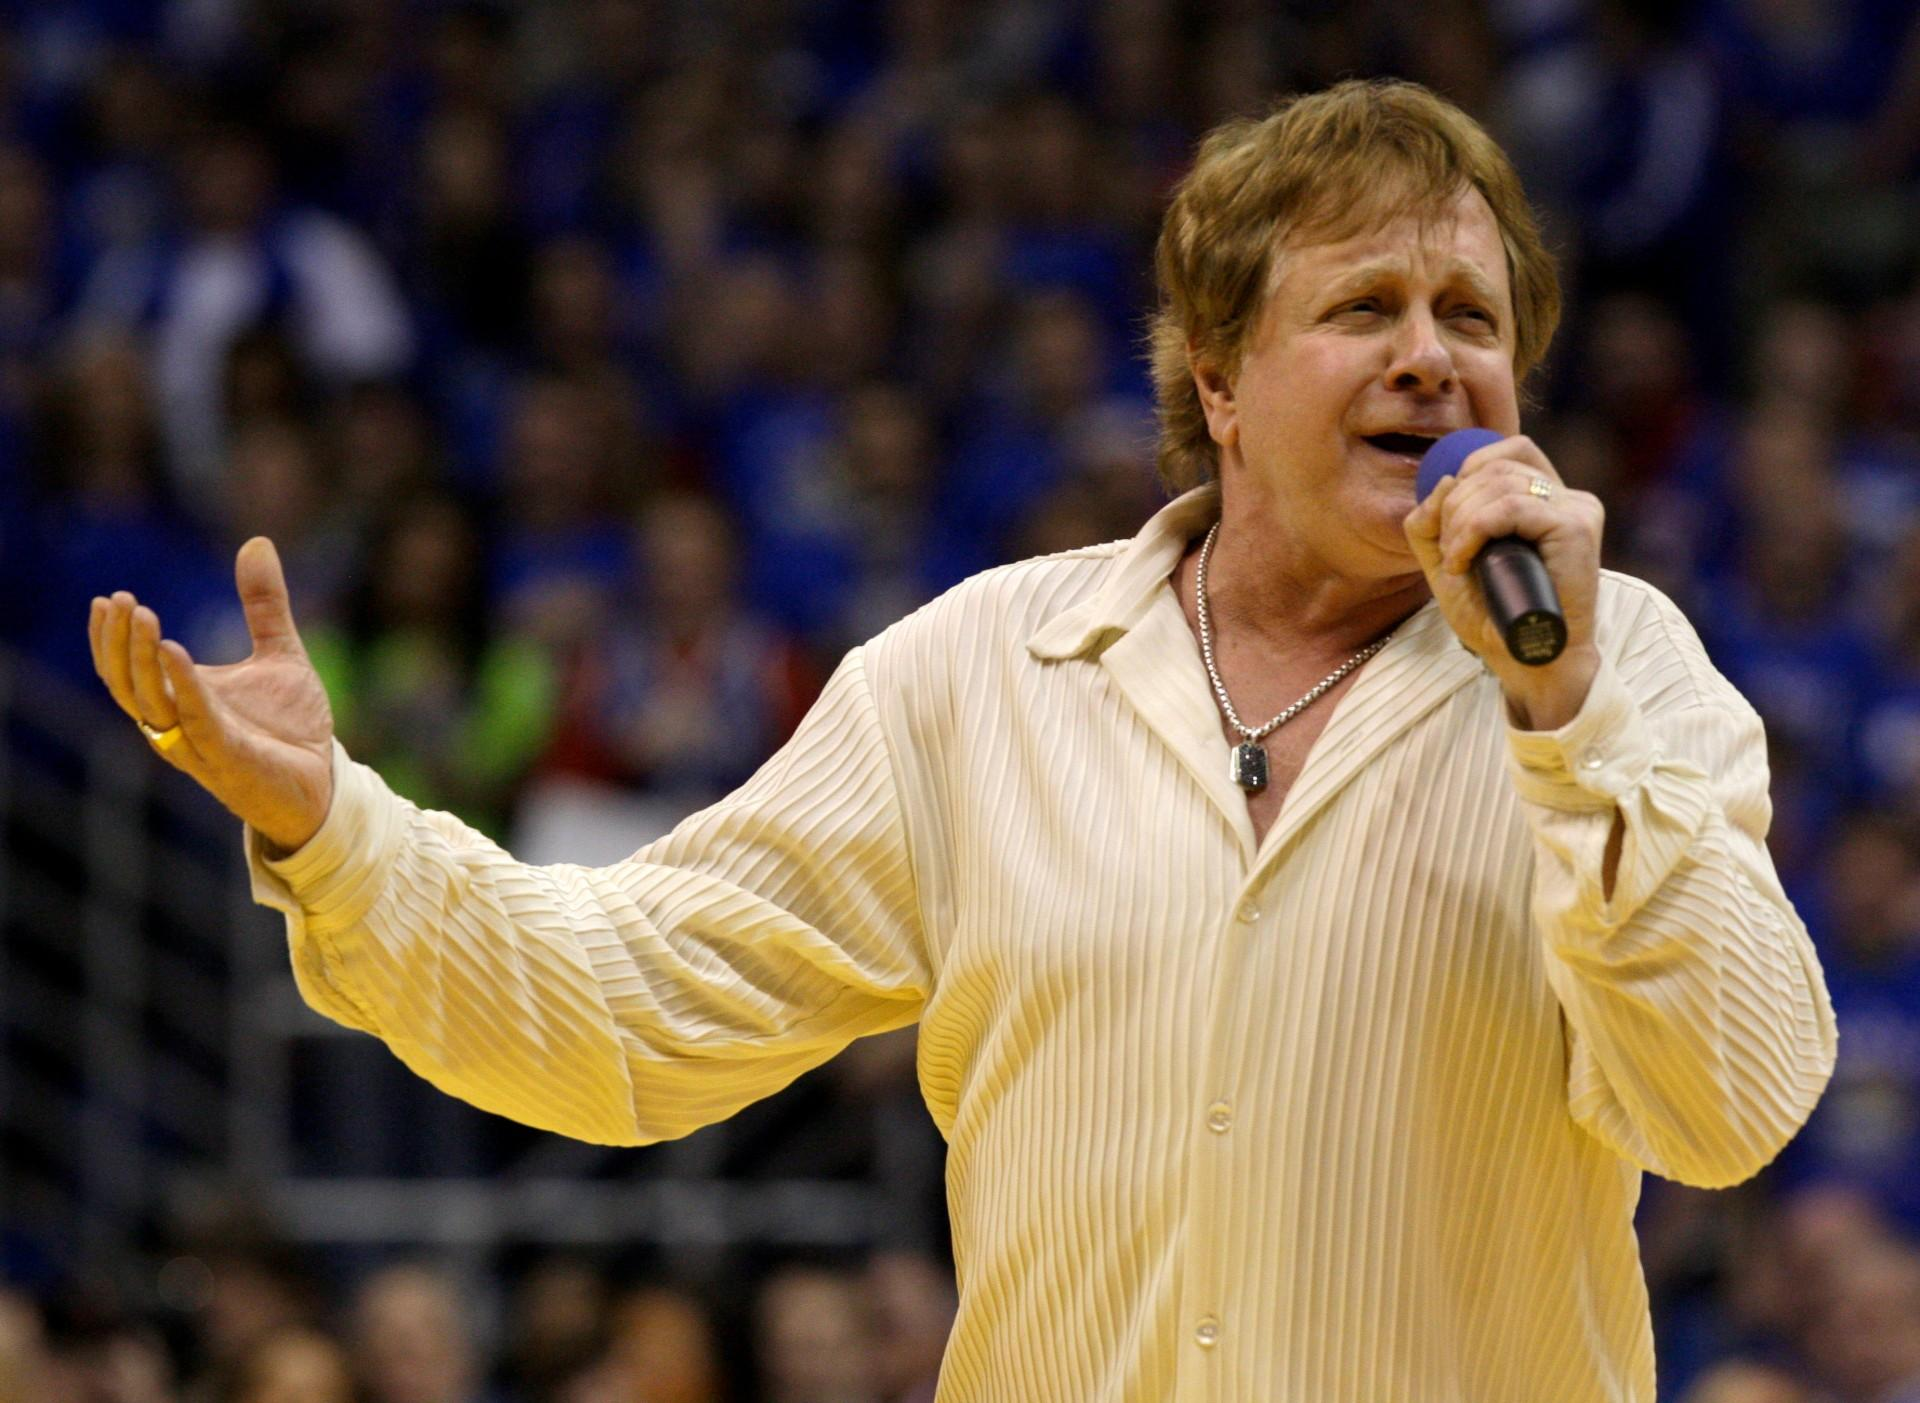 In this Jan. 25, 2010 file photo, Eddie Money sings the national anthem before an NCAA college basketball game between Kansas and Missouri in Lawrence, Kansas. Family members have said Eddie Money has died on Friday, Sept. 13, 2019. (AP Photo / Charlie Riedel, File)